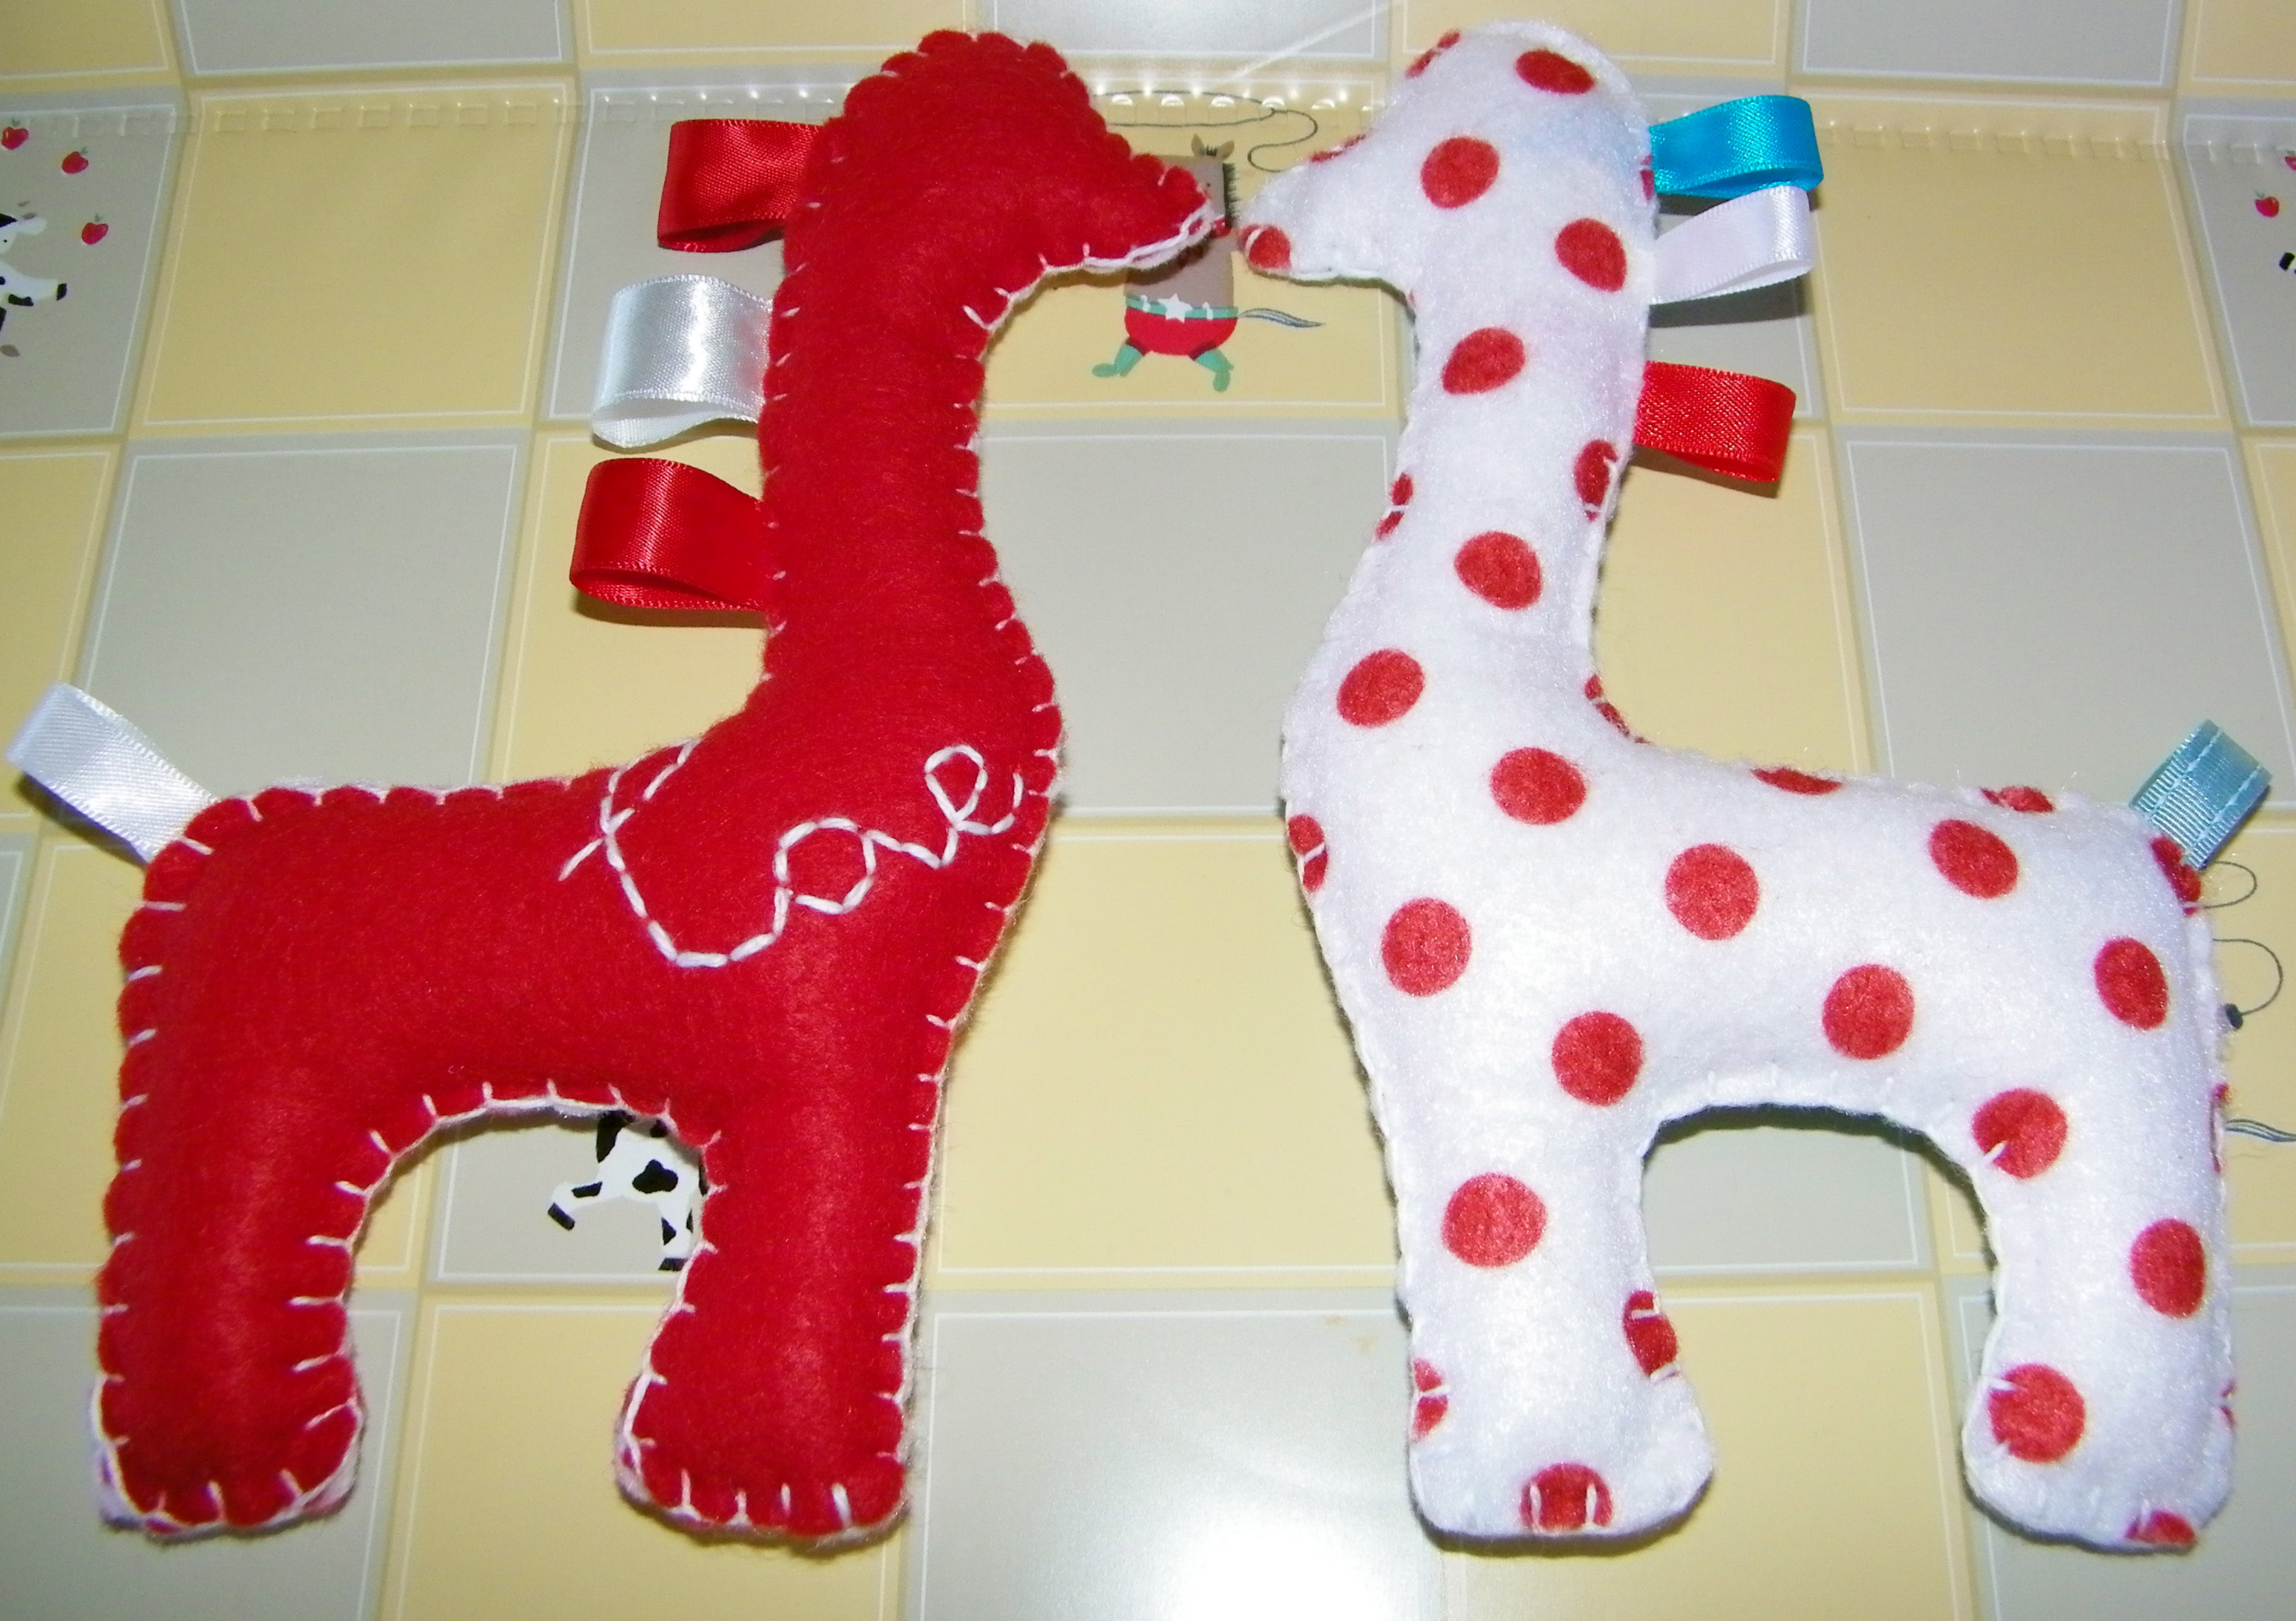 Baby Felt Toy Giraffe Pregnancy Baby Child